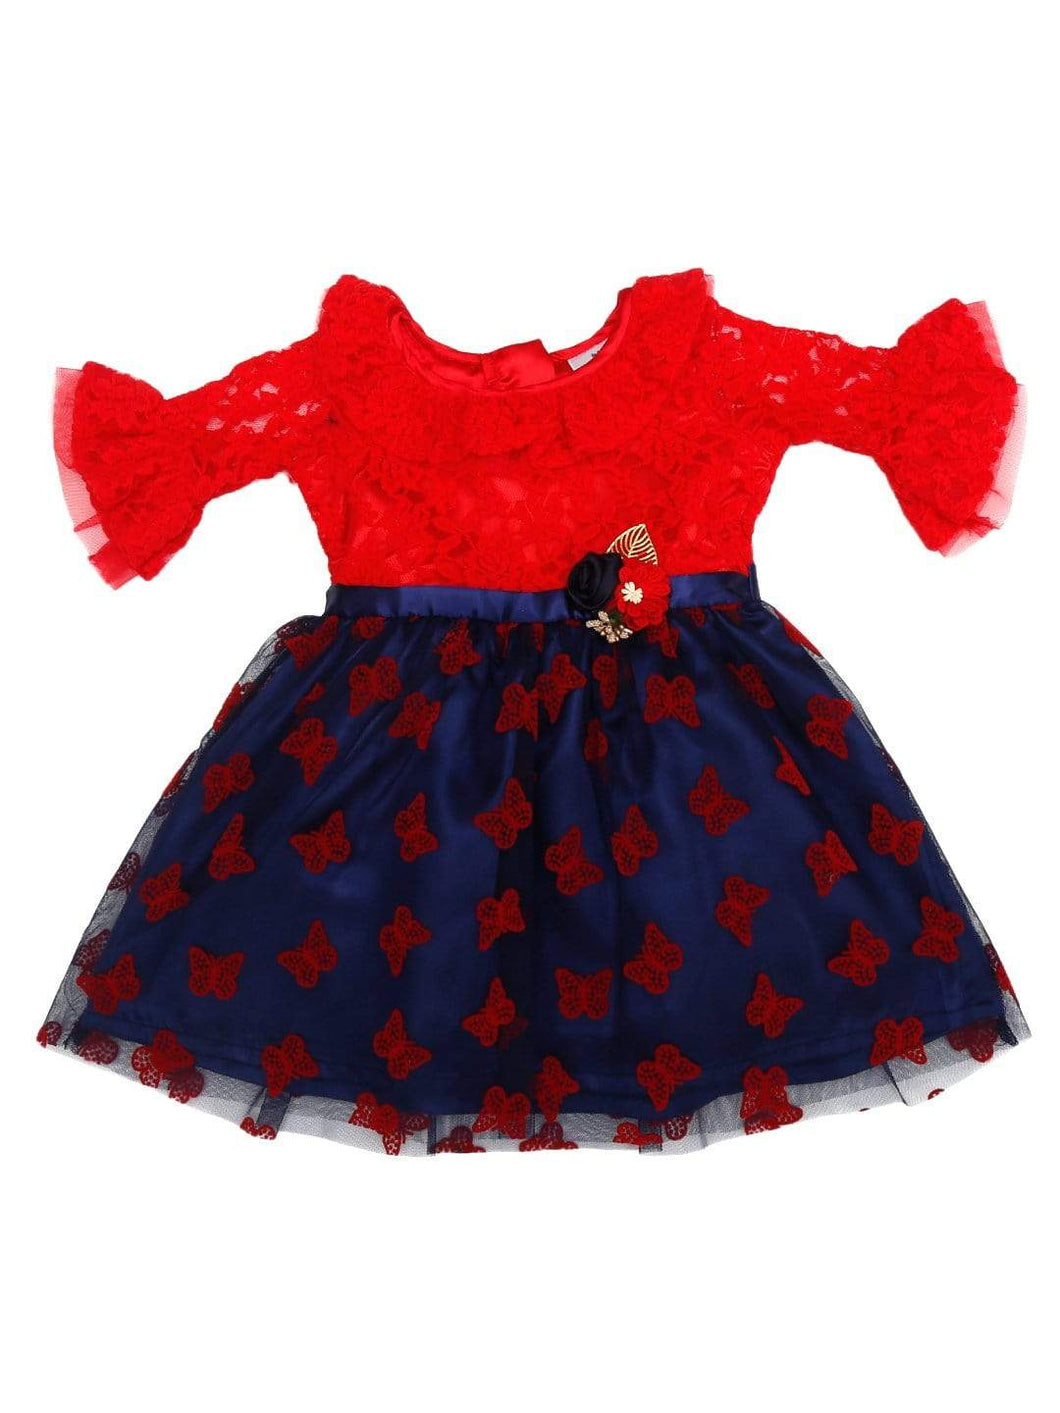 Flock Party Dress Red Lace and Navy Flock Dress